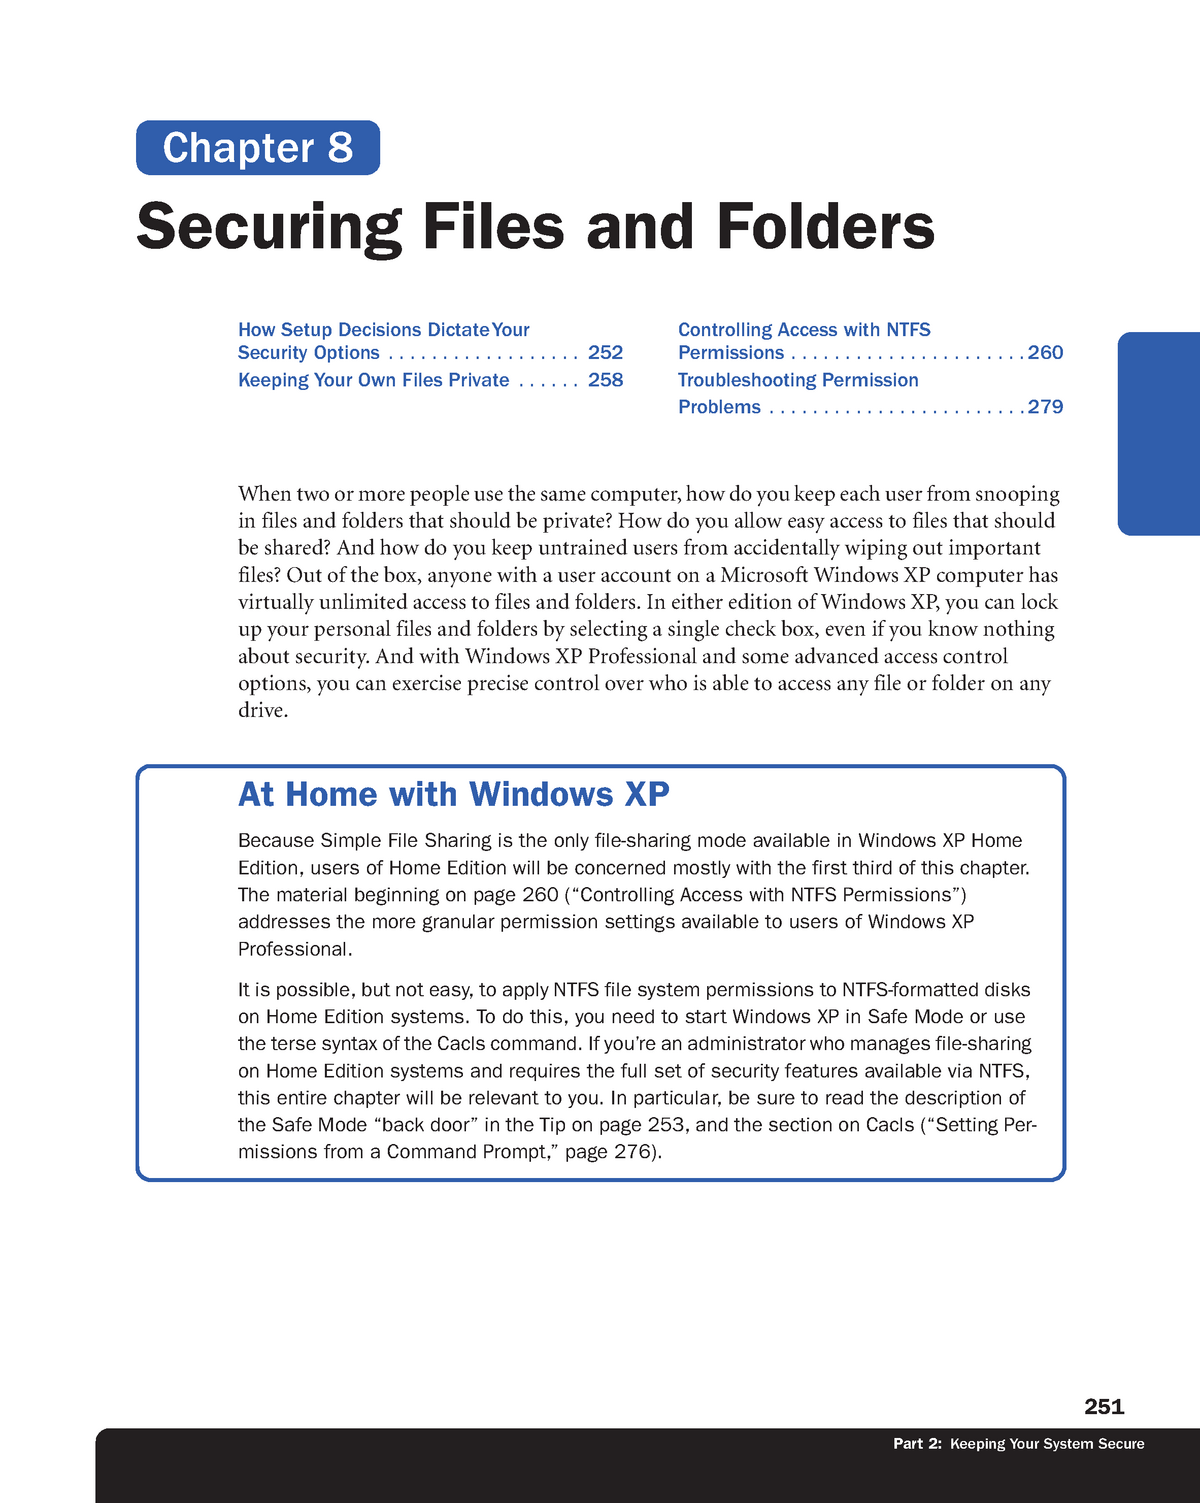 Chapter 8 - Securing Files and Folders - Principles of